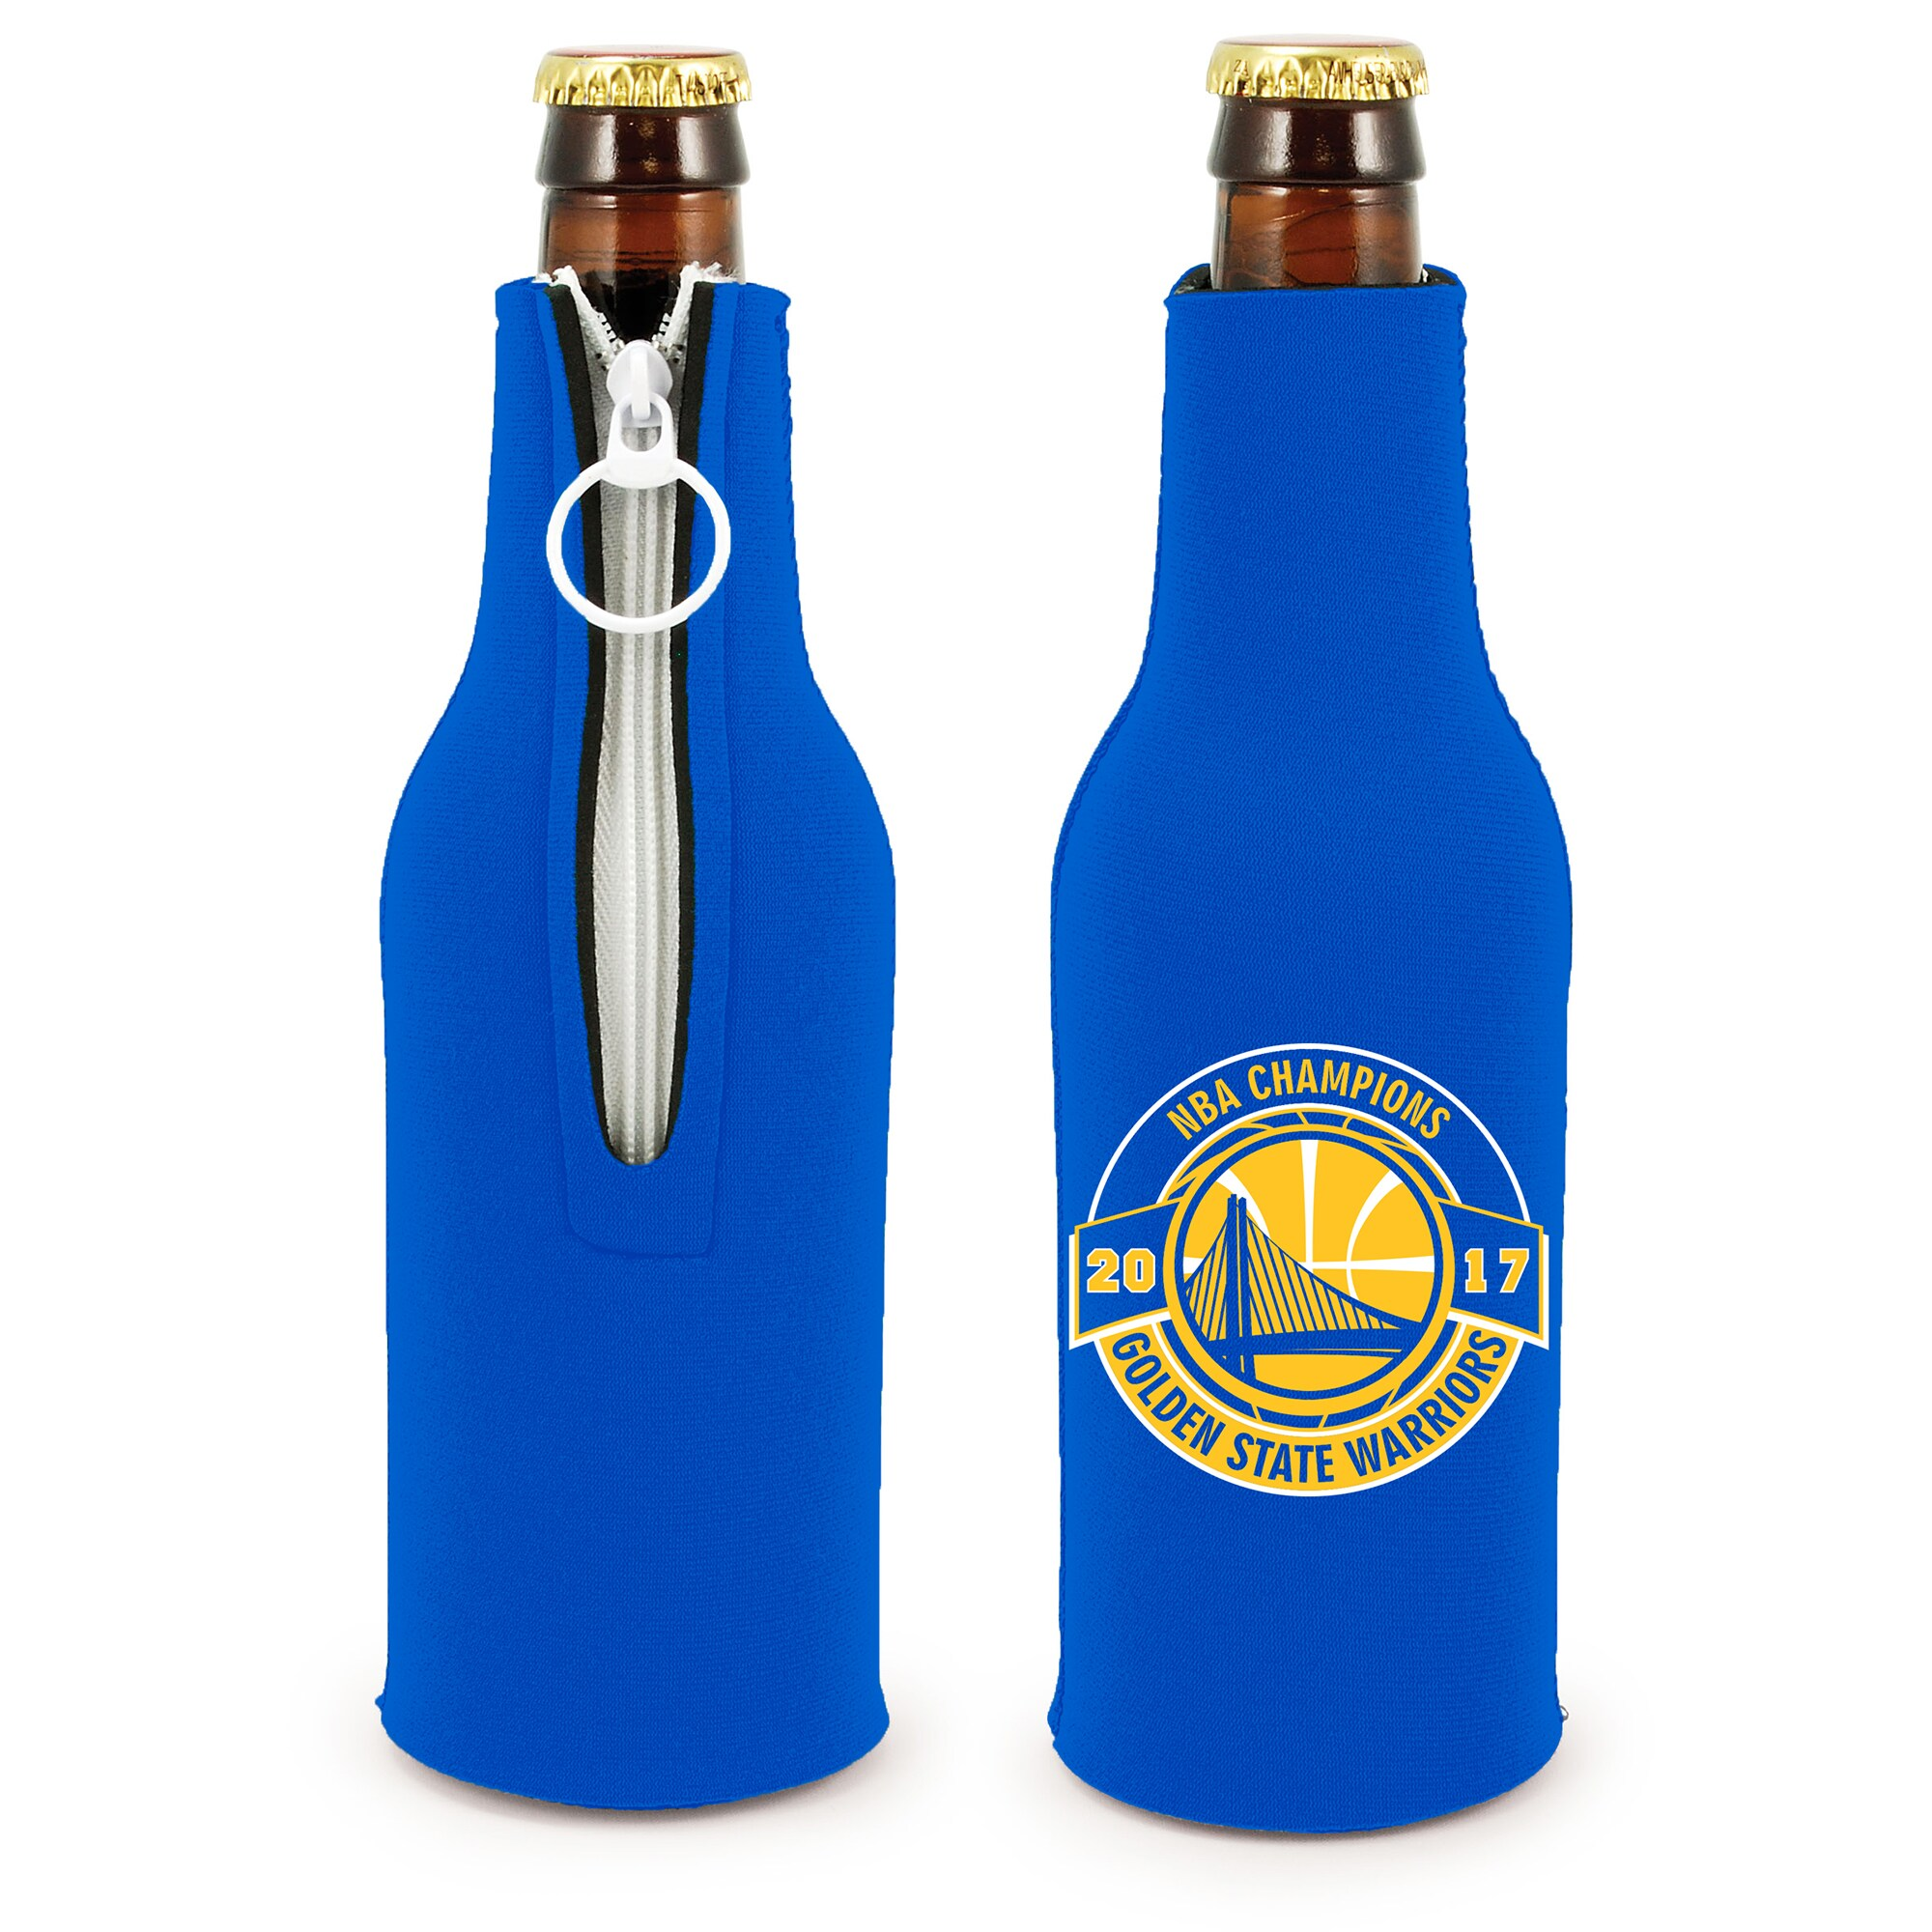 Golden State Warriors 2017 NBA Finals Champions Bottle Suit